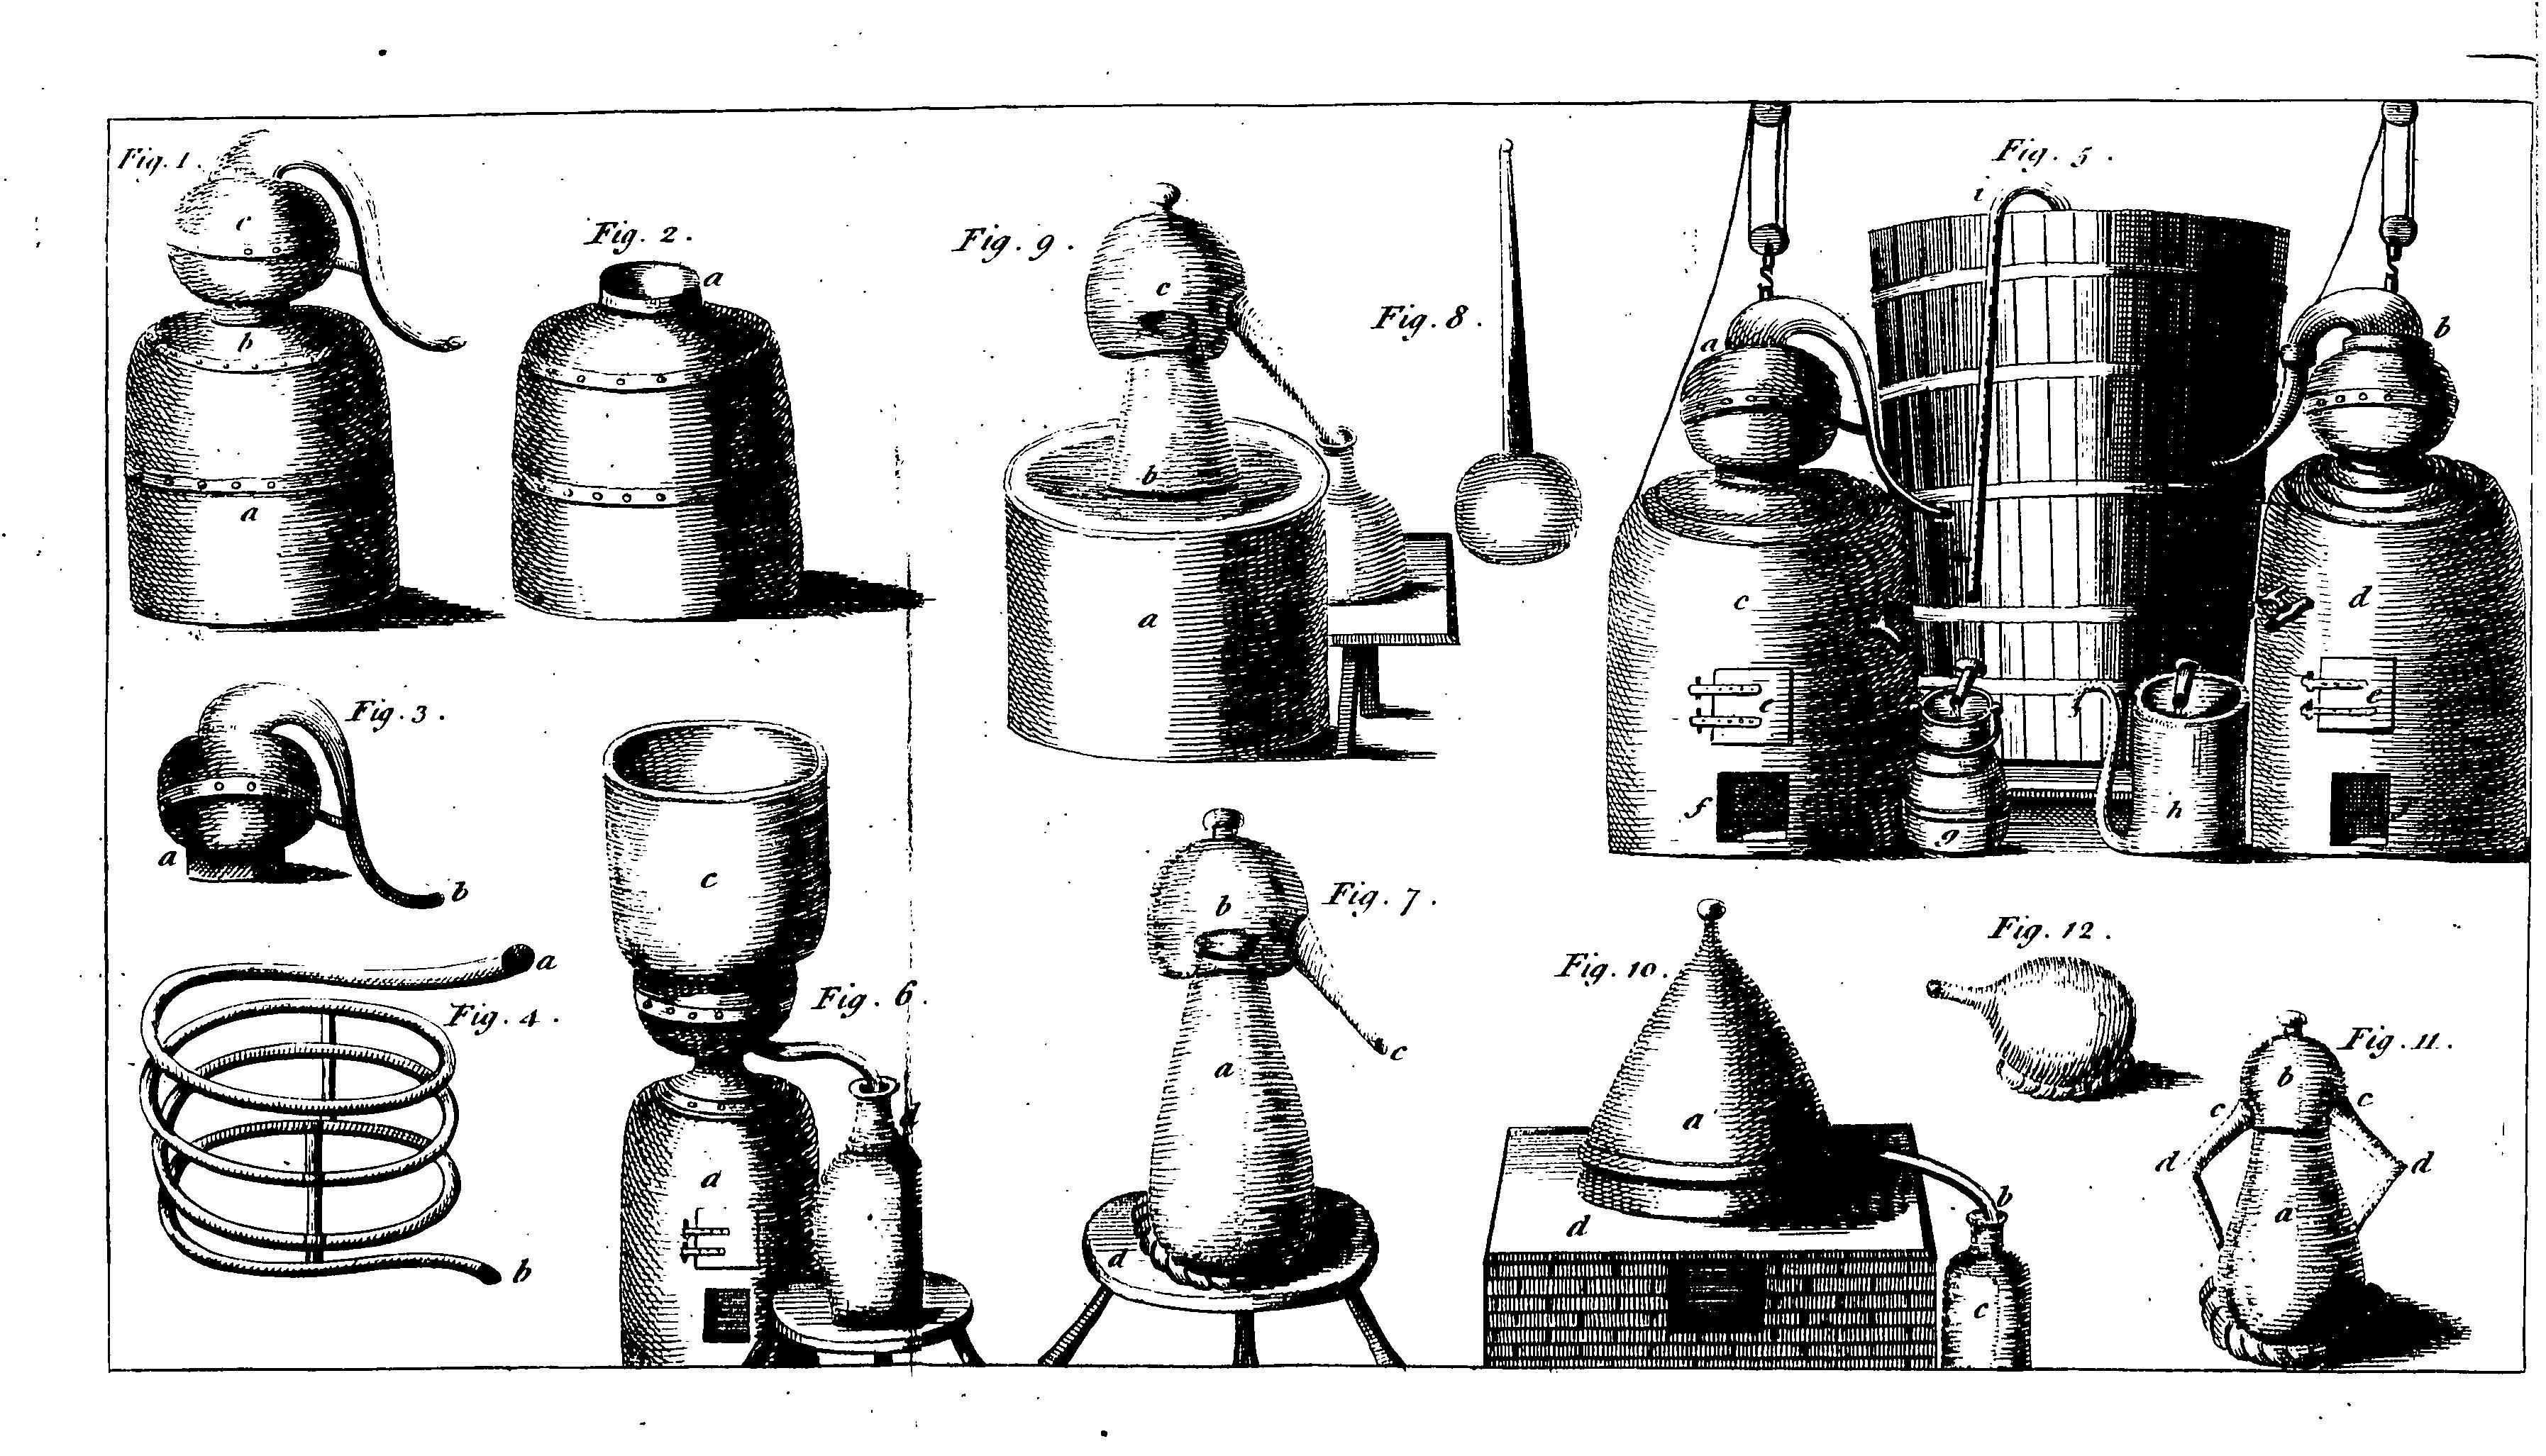 Distillation figures in Ambrose Cooper's 'The Complete Distiller' (1757)